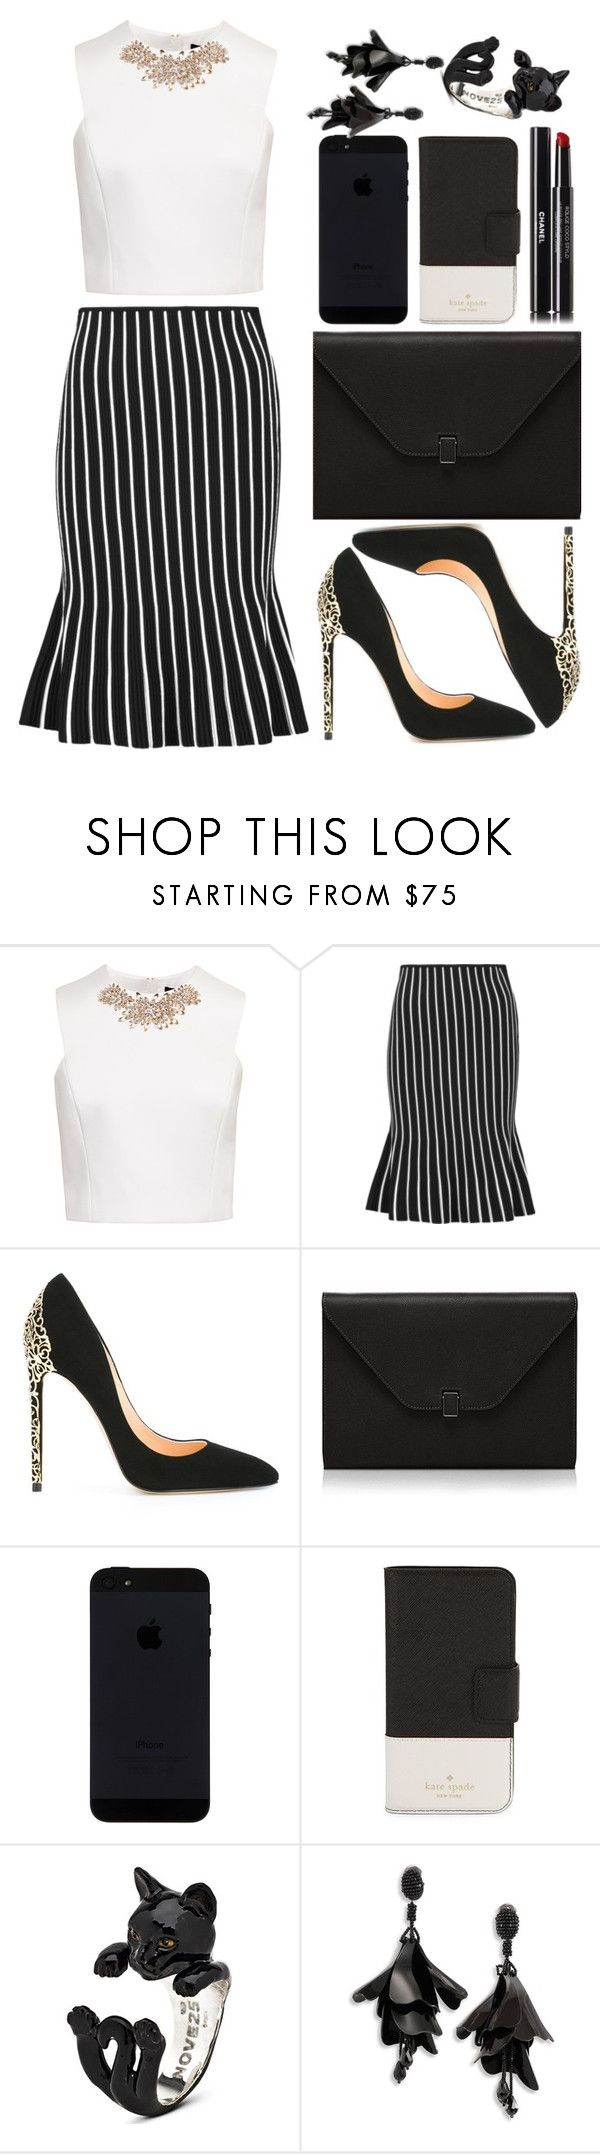 """""""Ted Baker Embellished Cap Sleeve Top, White"""" by faesadanparkaia ❤ liked on Polyvore featuring Ted Baker, J.W. Anderson, Cerasella Milano, Valextra, Kate Spade, Oscar de la Renta and Chanel"""